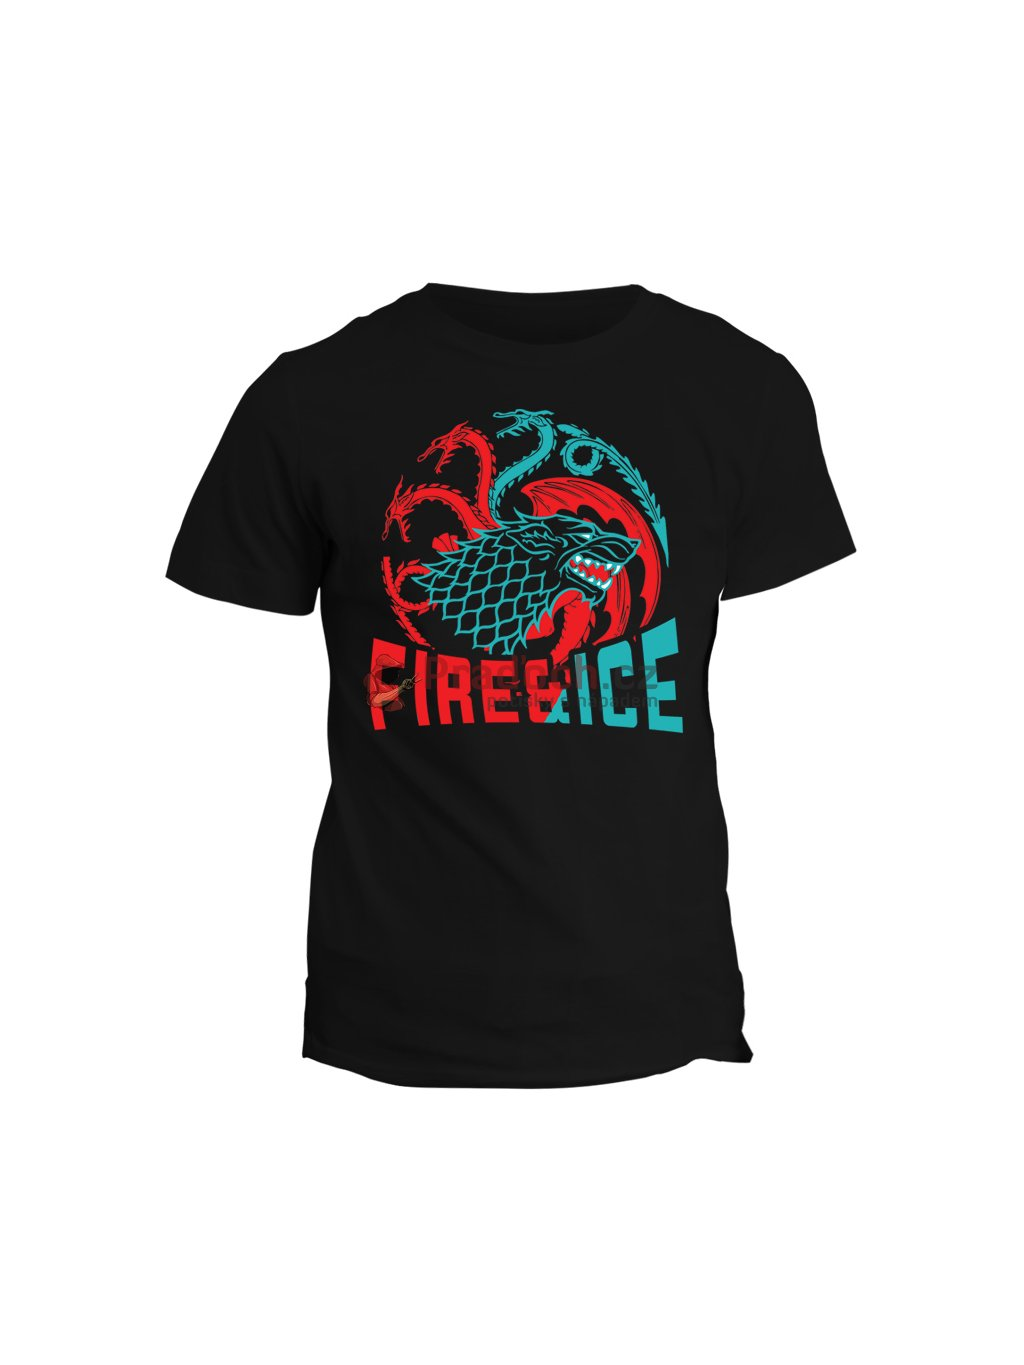 Tričko game of thrones - Fire and ice